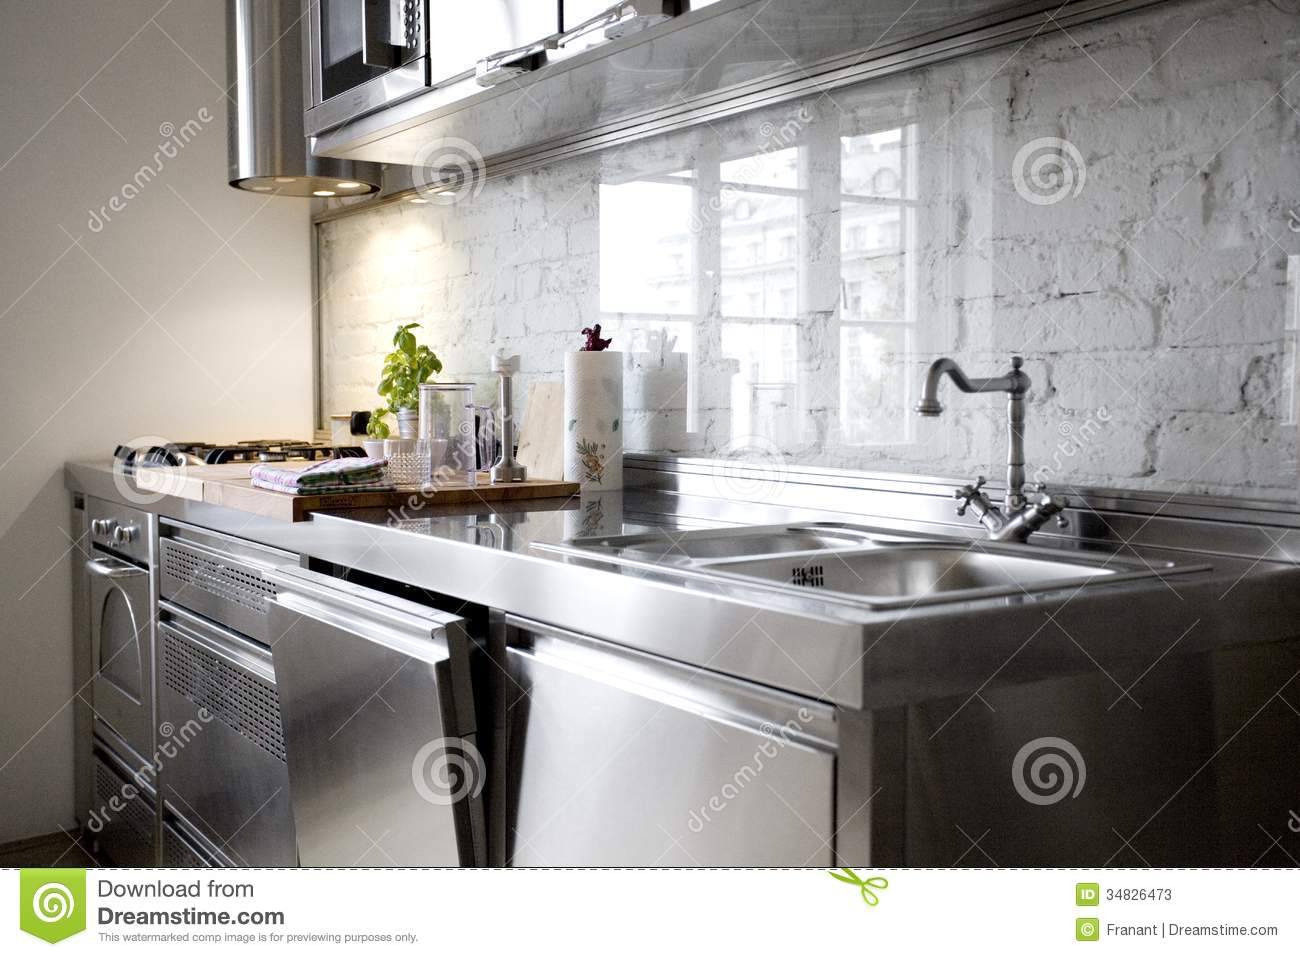 Modern Kitchen With Stainless Steel Appliances Stock